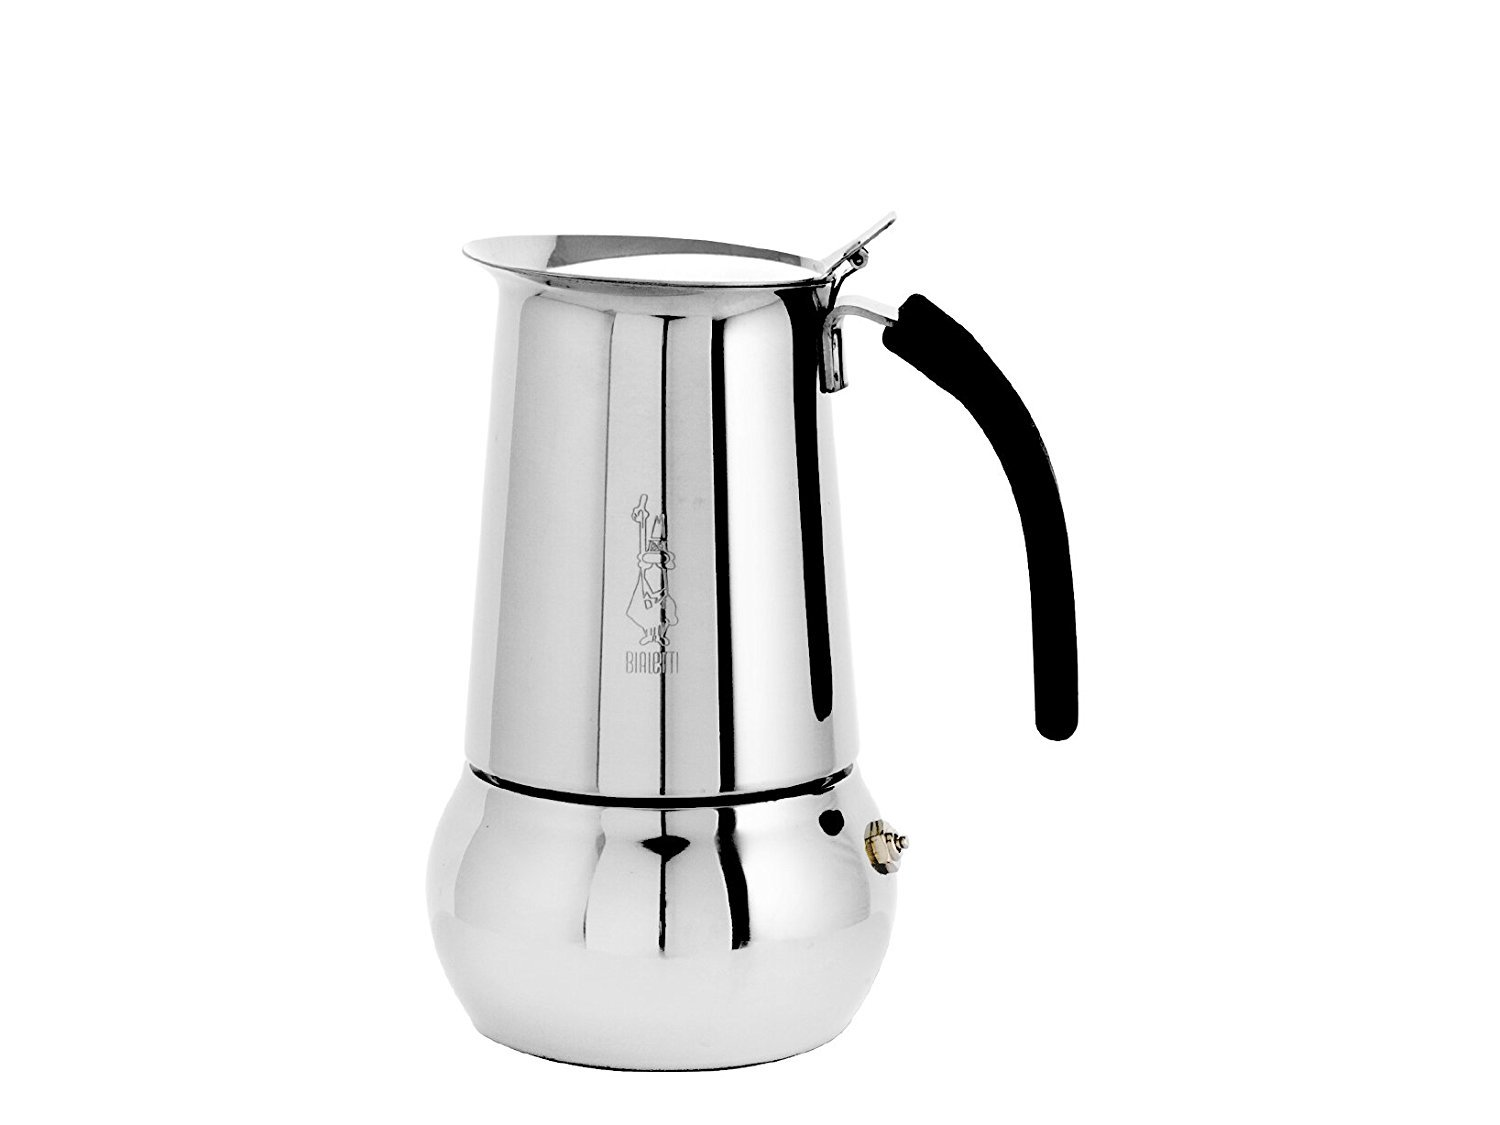 Bialetti 06661 Kitty Espresso Coffee Maker, Stainless Steel, 6 cup by Bialetti